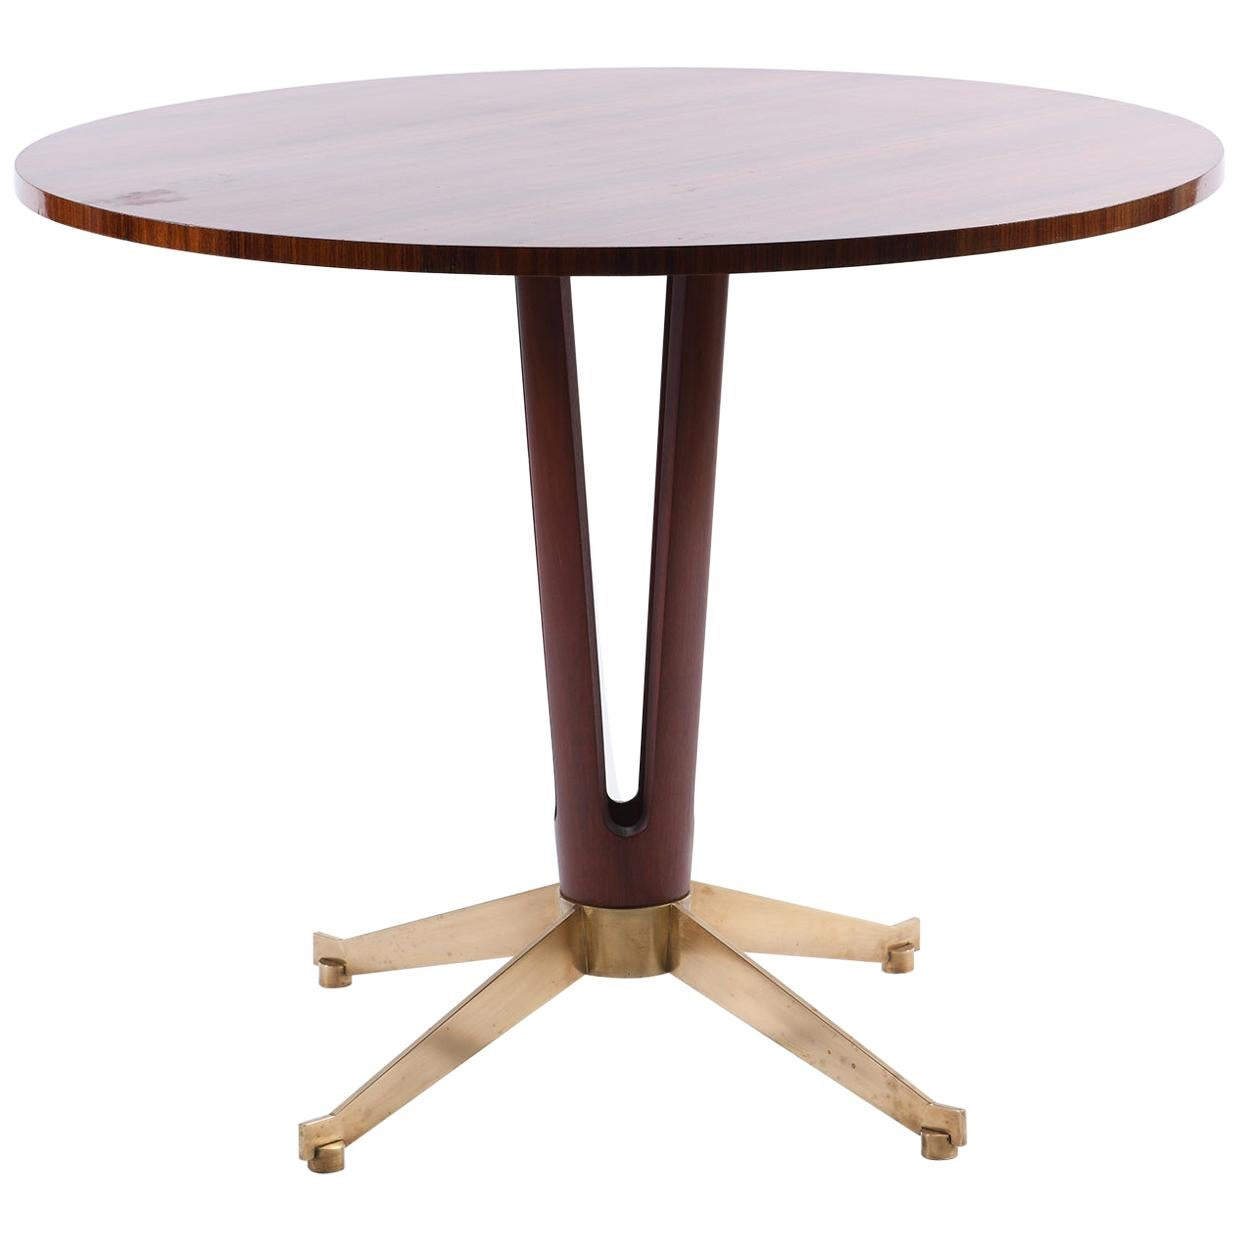 Midcentury Italian Round Table with Four-Lobed Base and Bronze Cast Feet